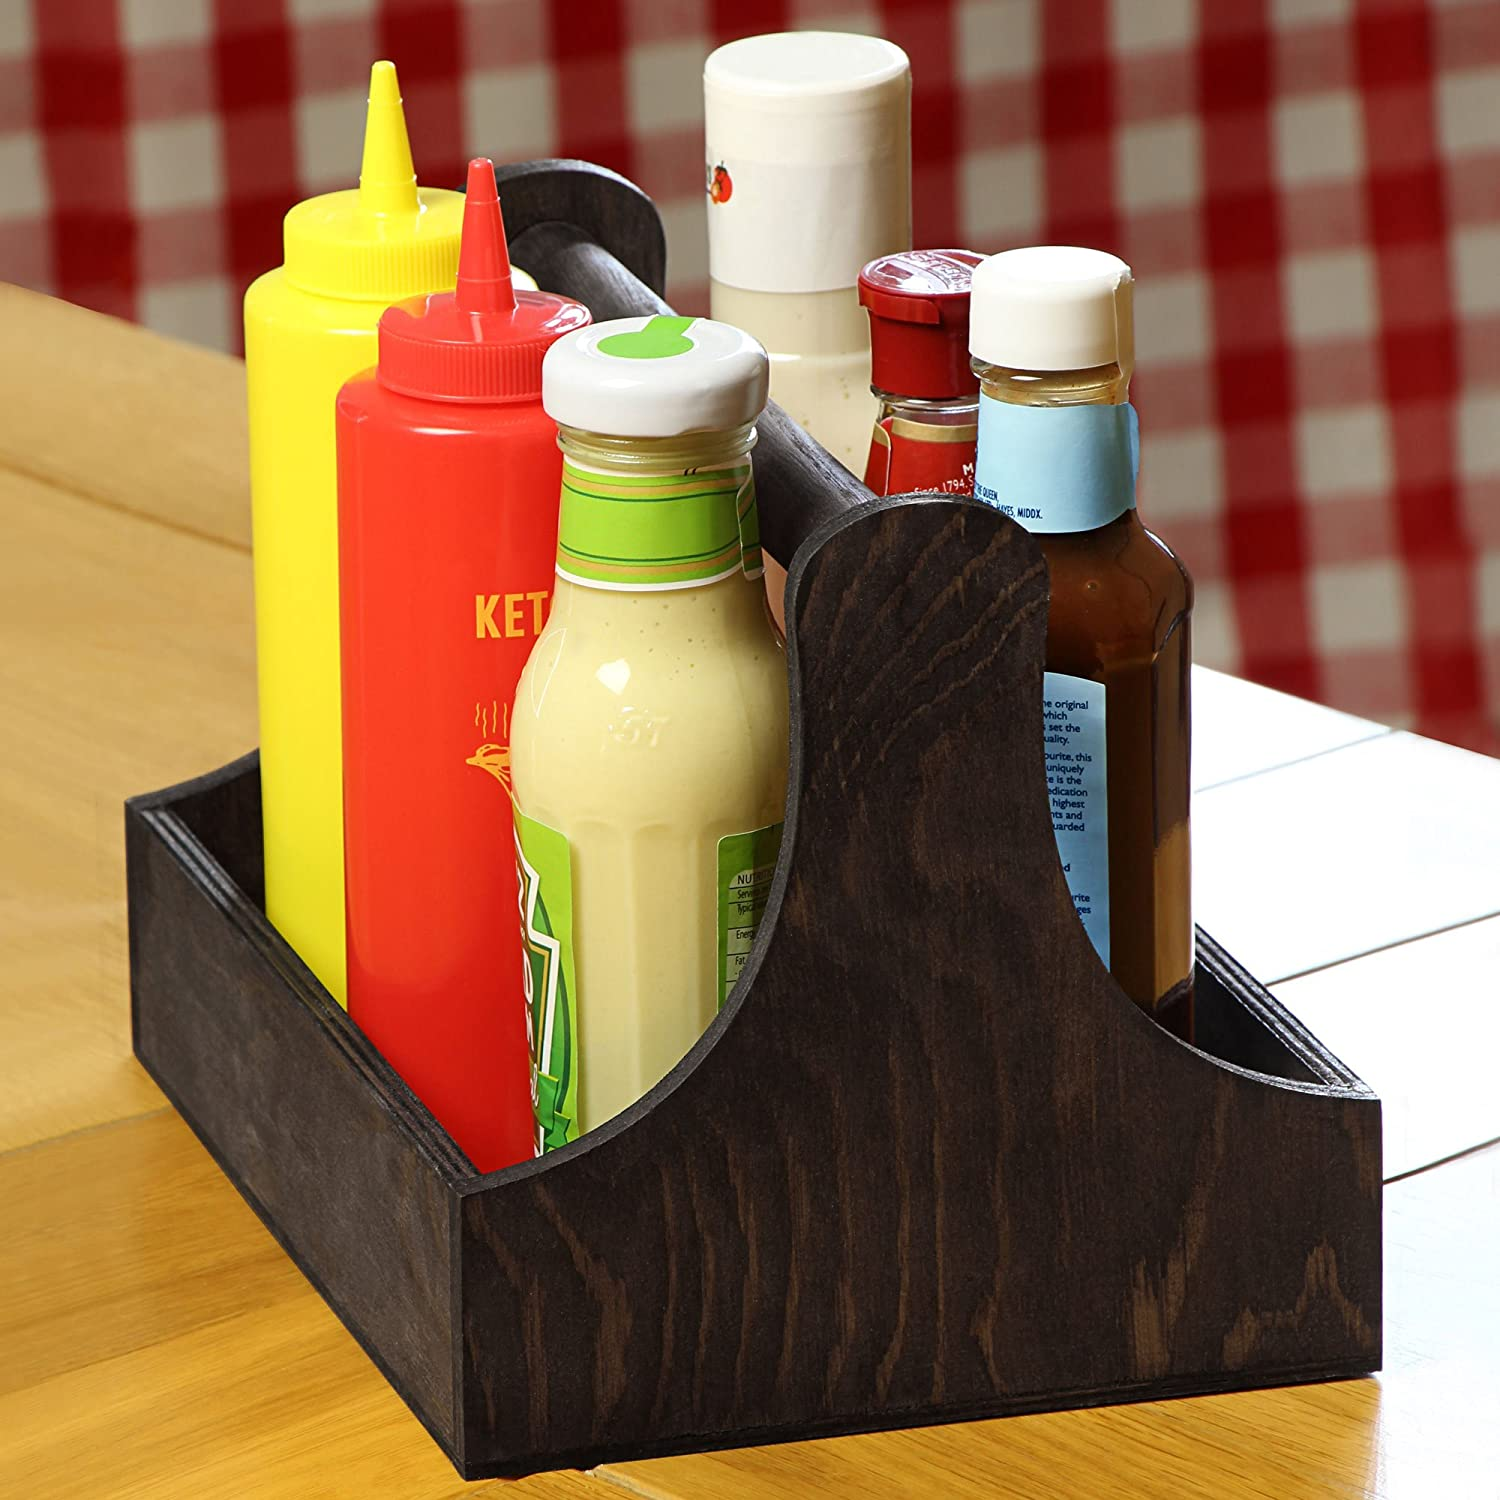 dine@drinkstuff Pine Condiment Caddy 25x18x18cm - Case of 10 Handy Table Organiser for Condiments and Sauce Bottles